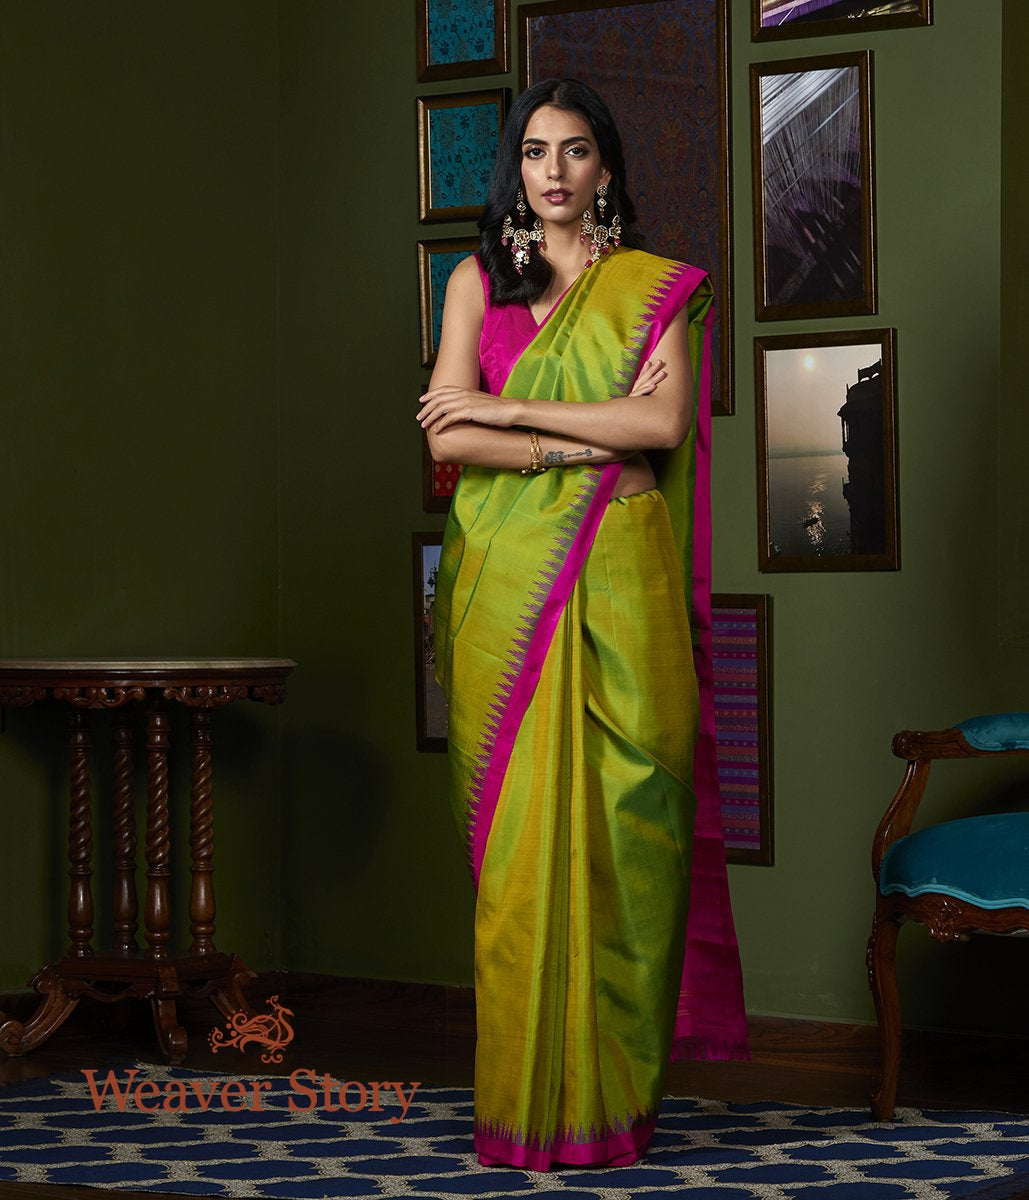 Handwoven Green Kanjivaram Silk Saree with Pink Temple Border